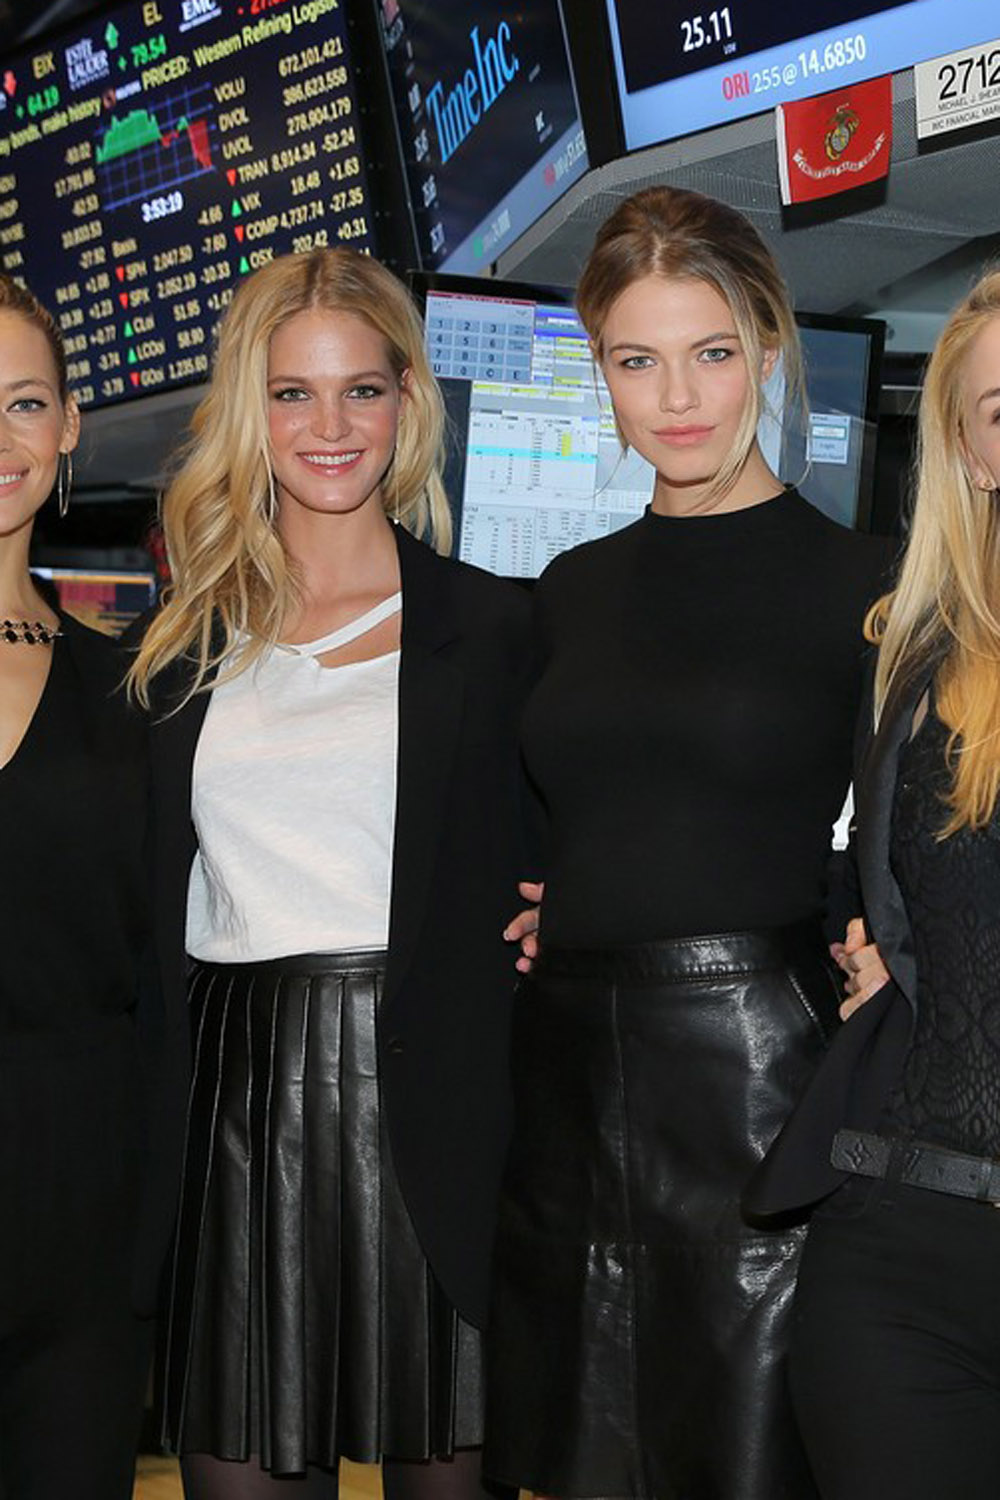 Sports Illustrated Swimsuit Models at the New York Stock Exchange